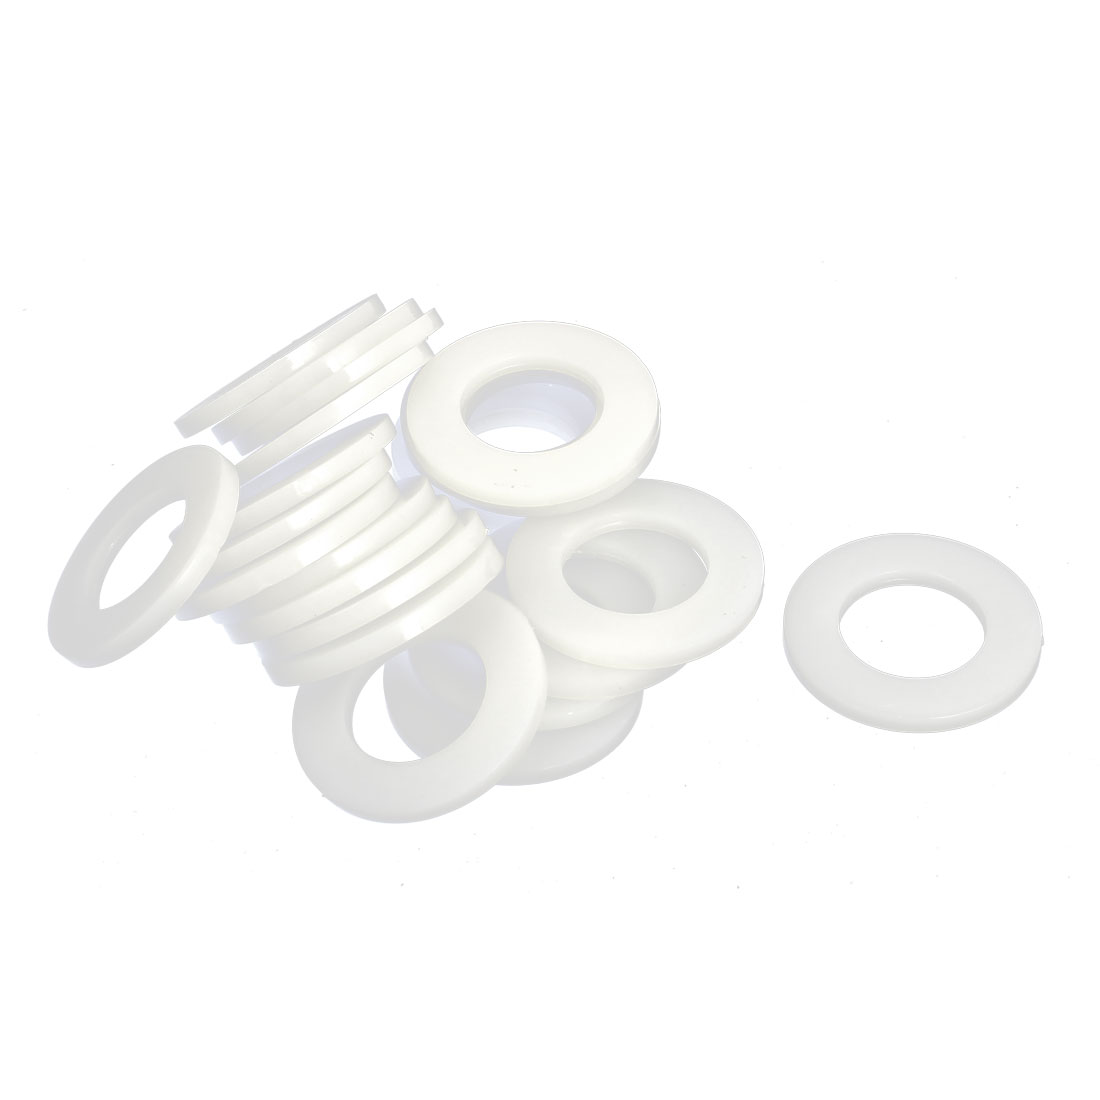 36mm x 20mm x 3mm Nylon Flat Insulating Washers Spacer Gasket Beige 25pcs